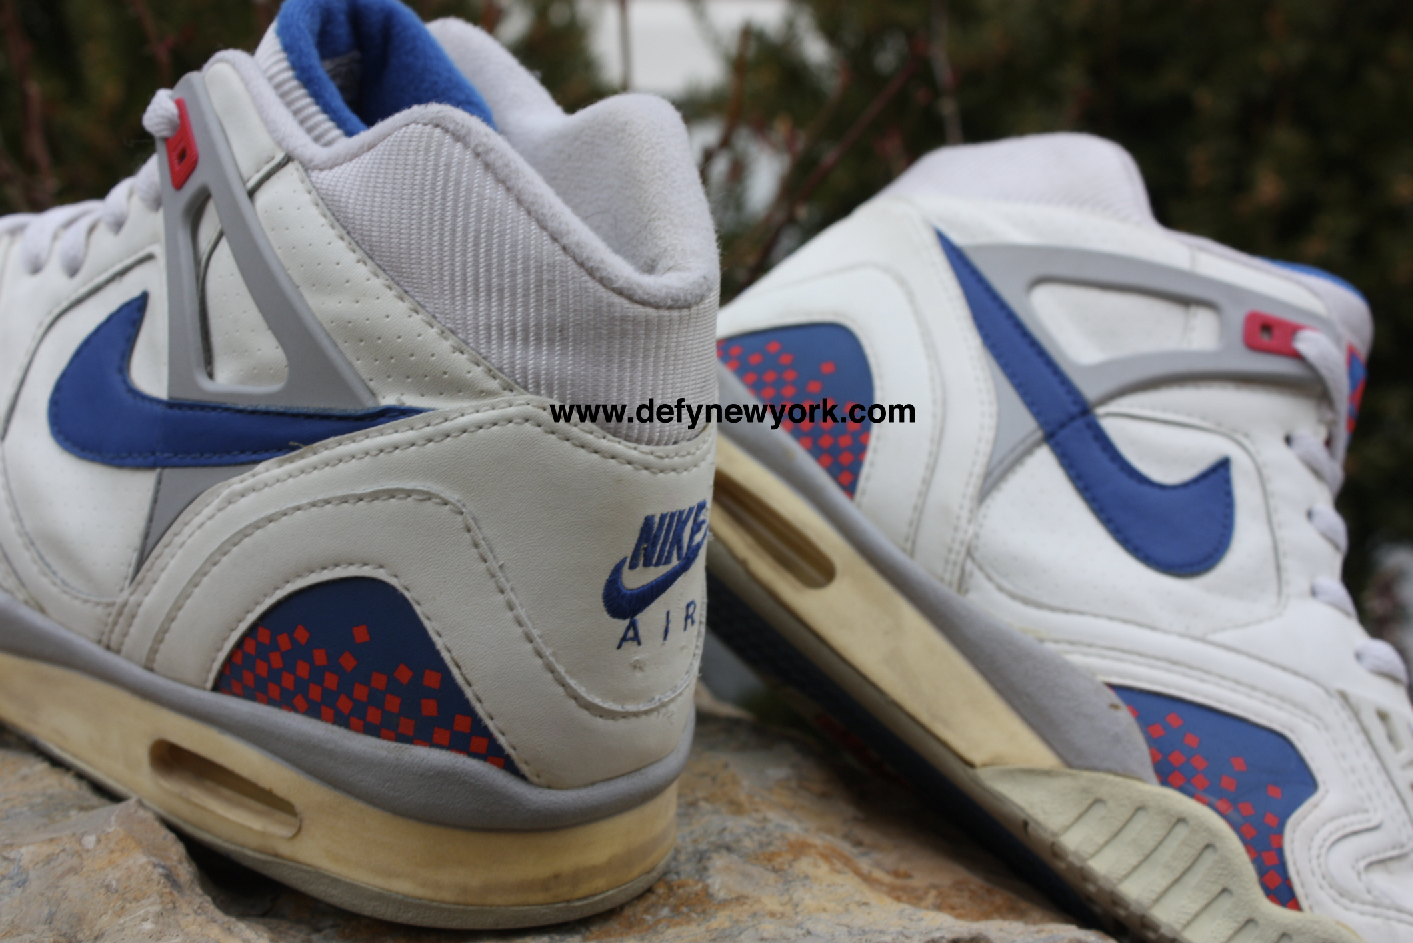 nike air tech challenge ii 34 original whiteblue